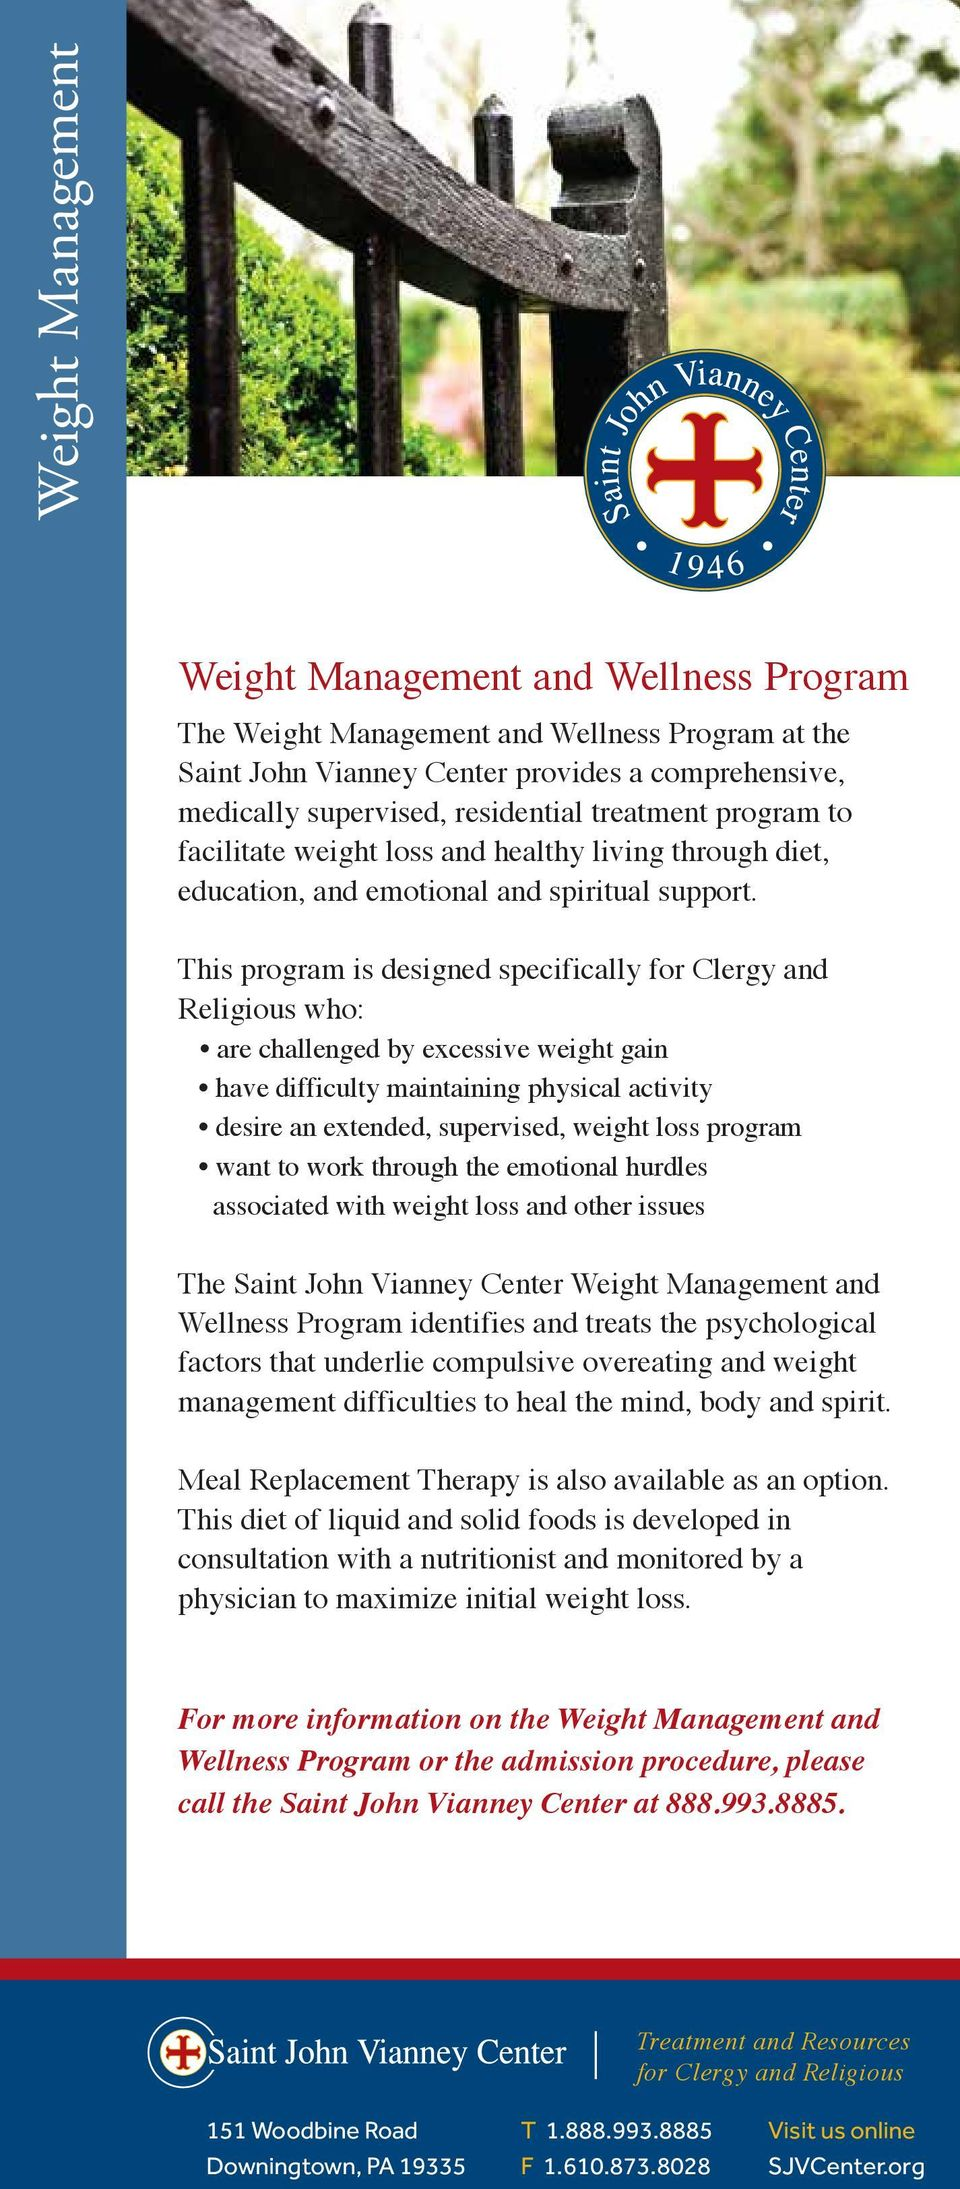 This program is designed specifically for Clergy and Religious who: are challenged by excessive weight gain have difficulty maintaining physical activity desire an extended, supervised, weight loss